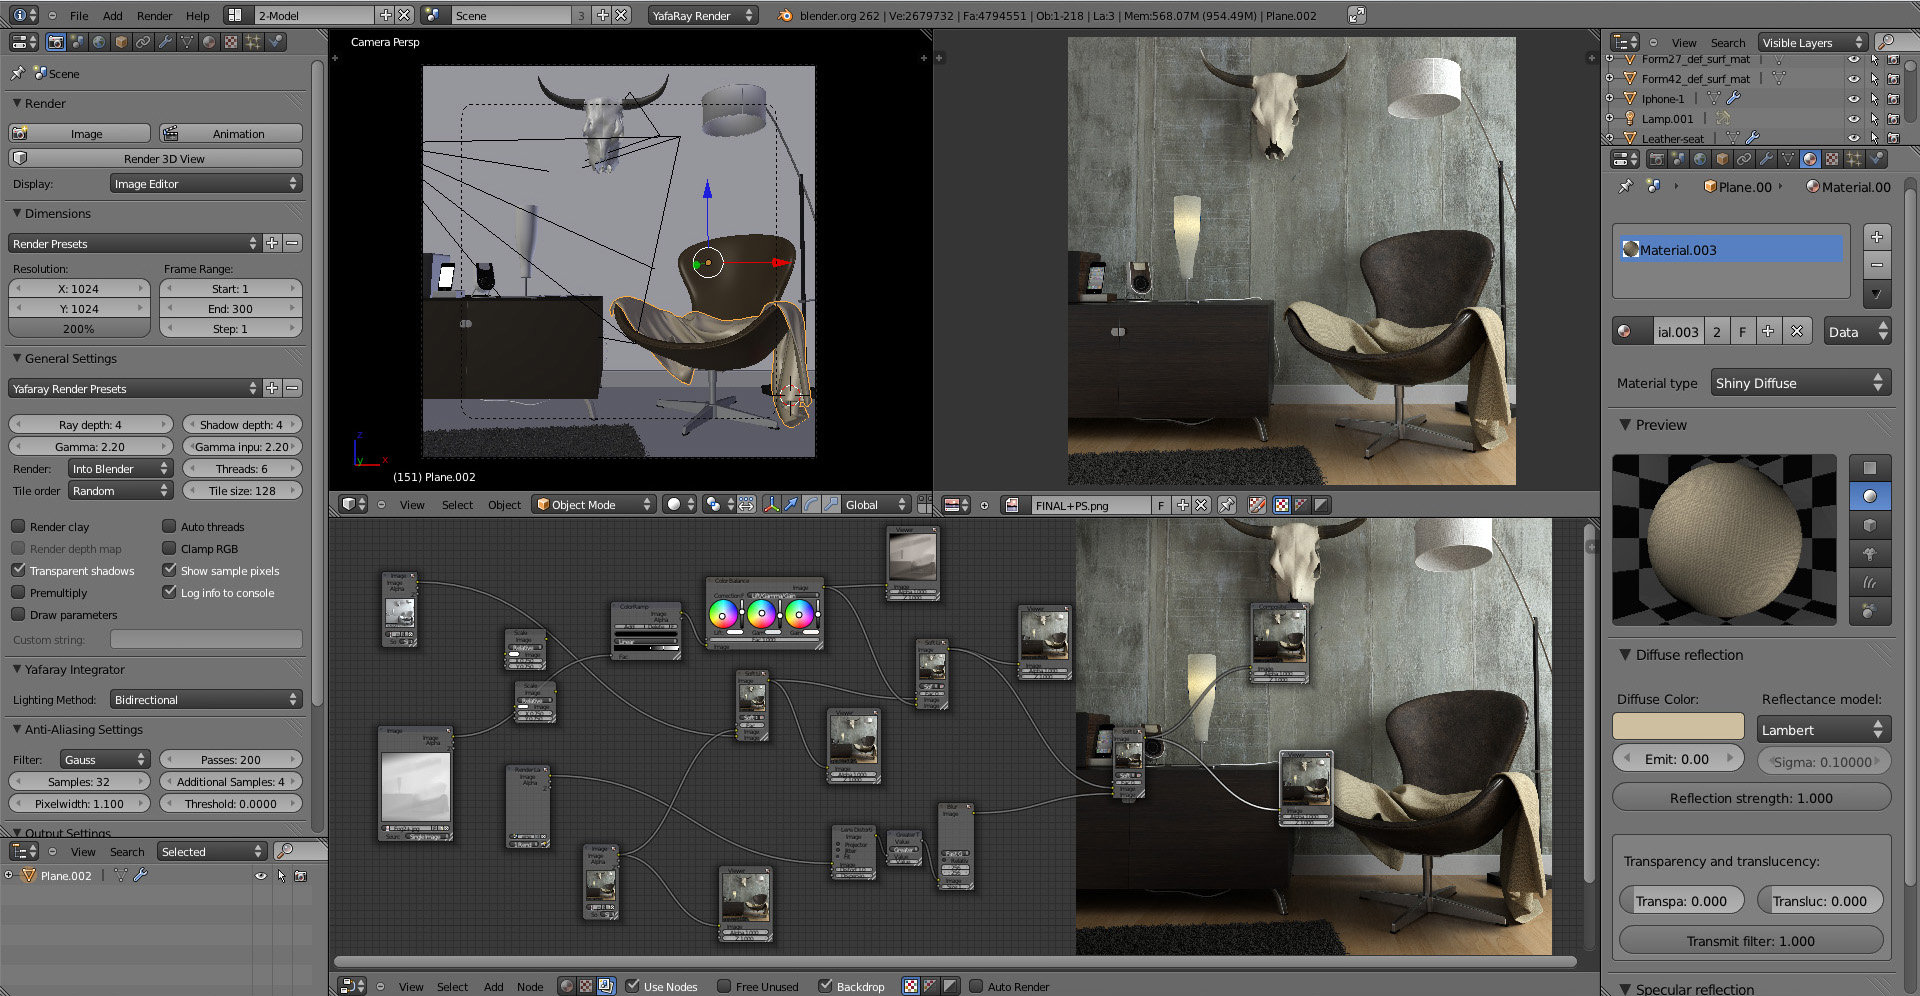 ScreenCapture-Blender.jpg